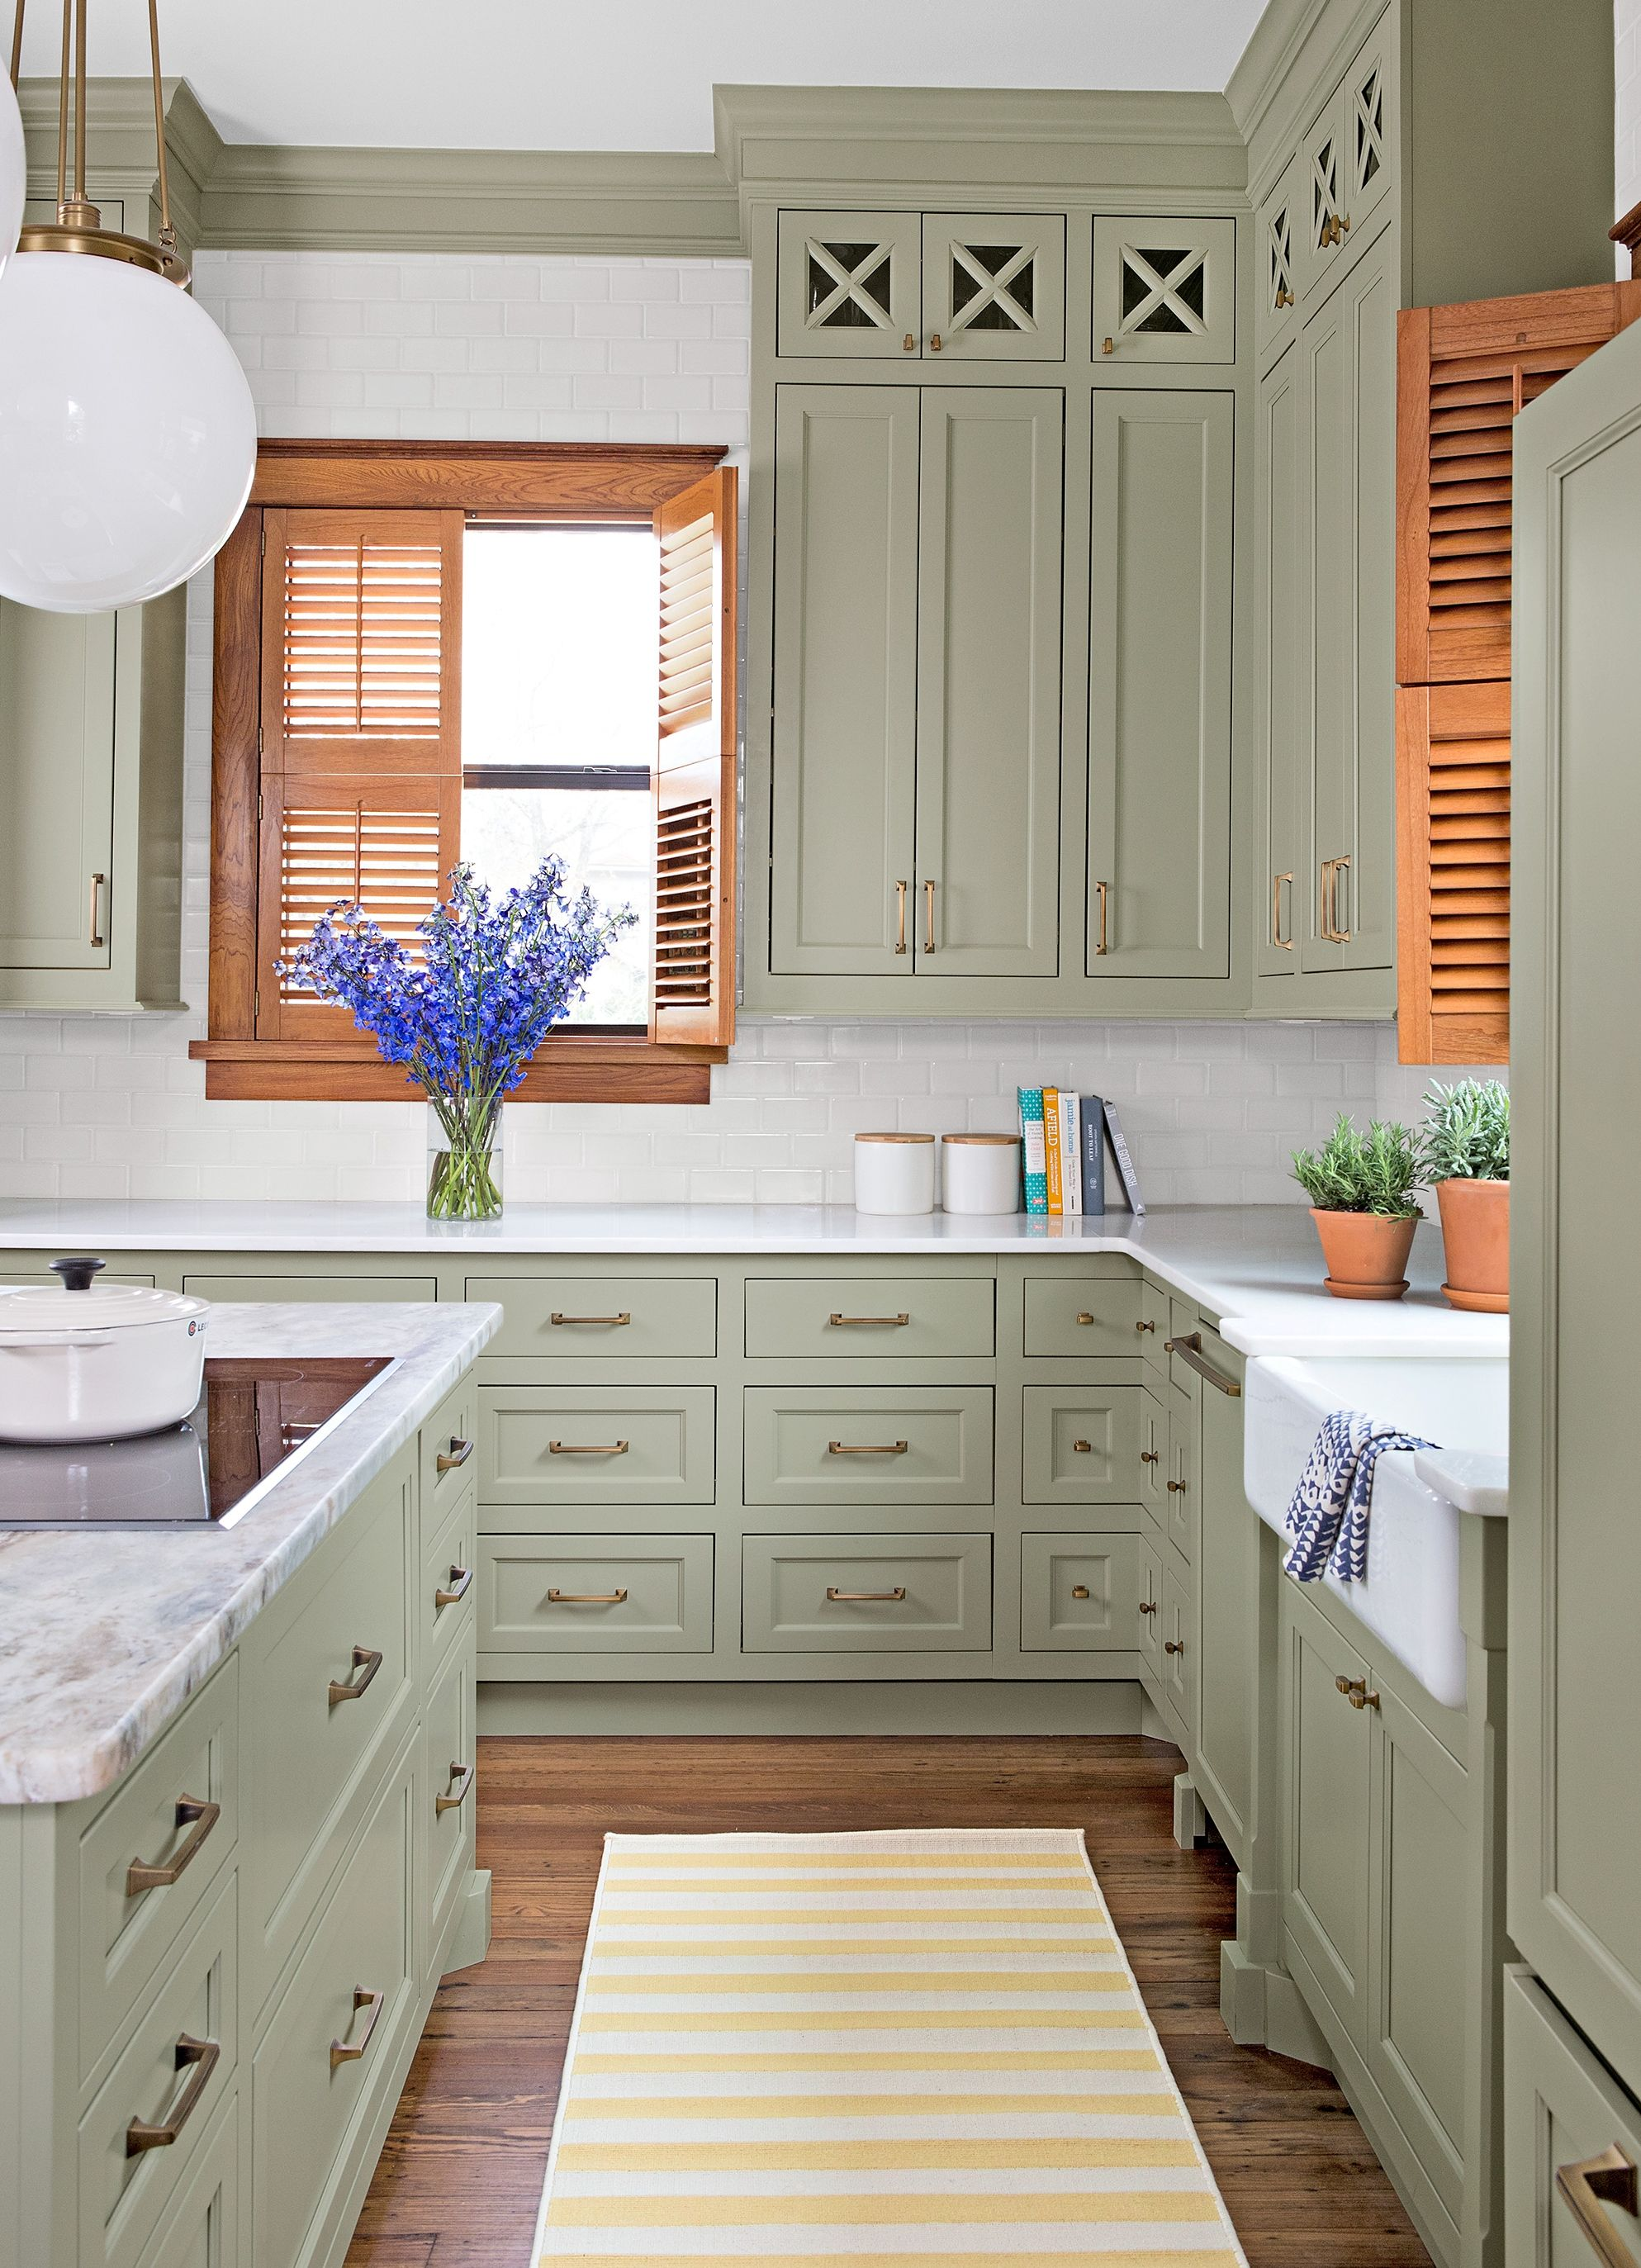 Before And After A Kitchen Well Done Kitchen Cabinets Painted Grey Best Kitchen Cabinets Green Kitchen Cabinets